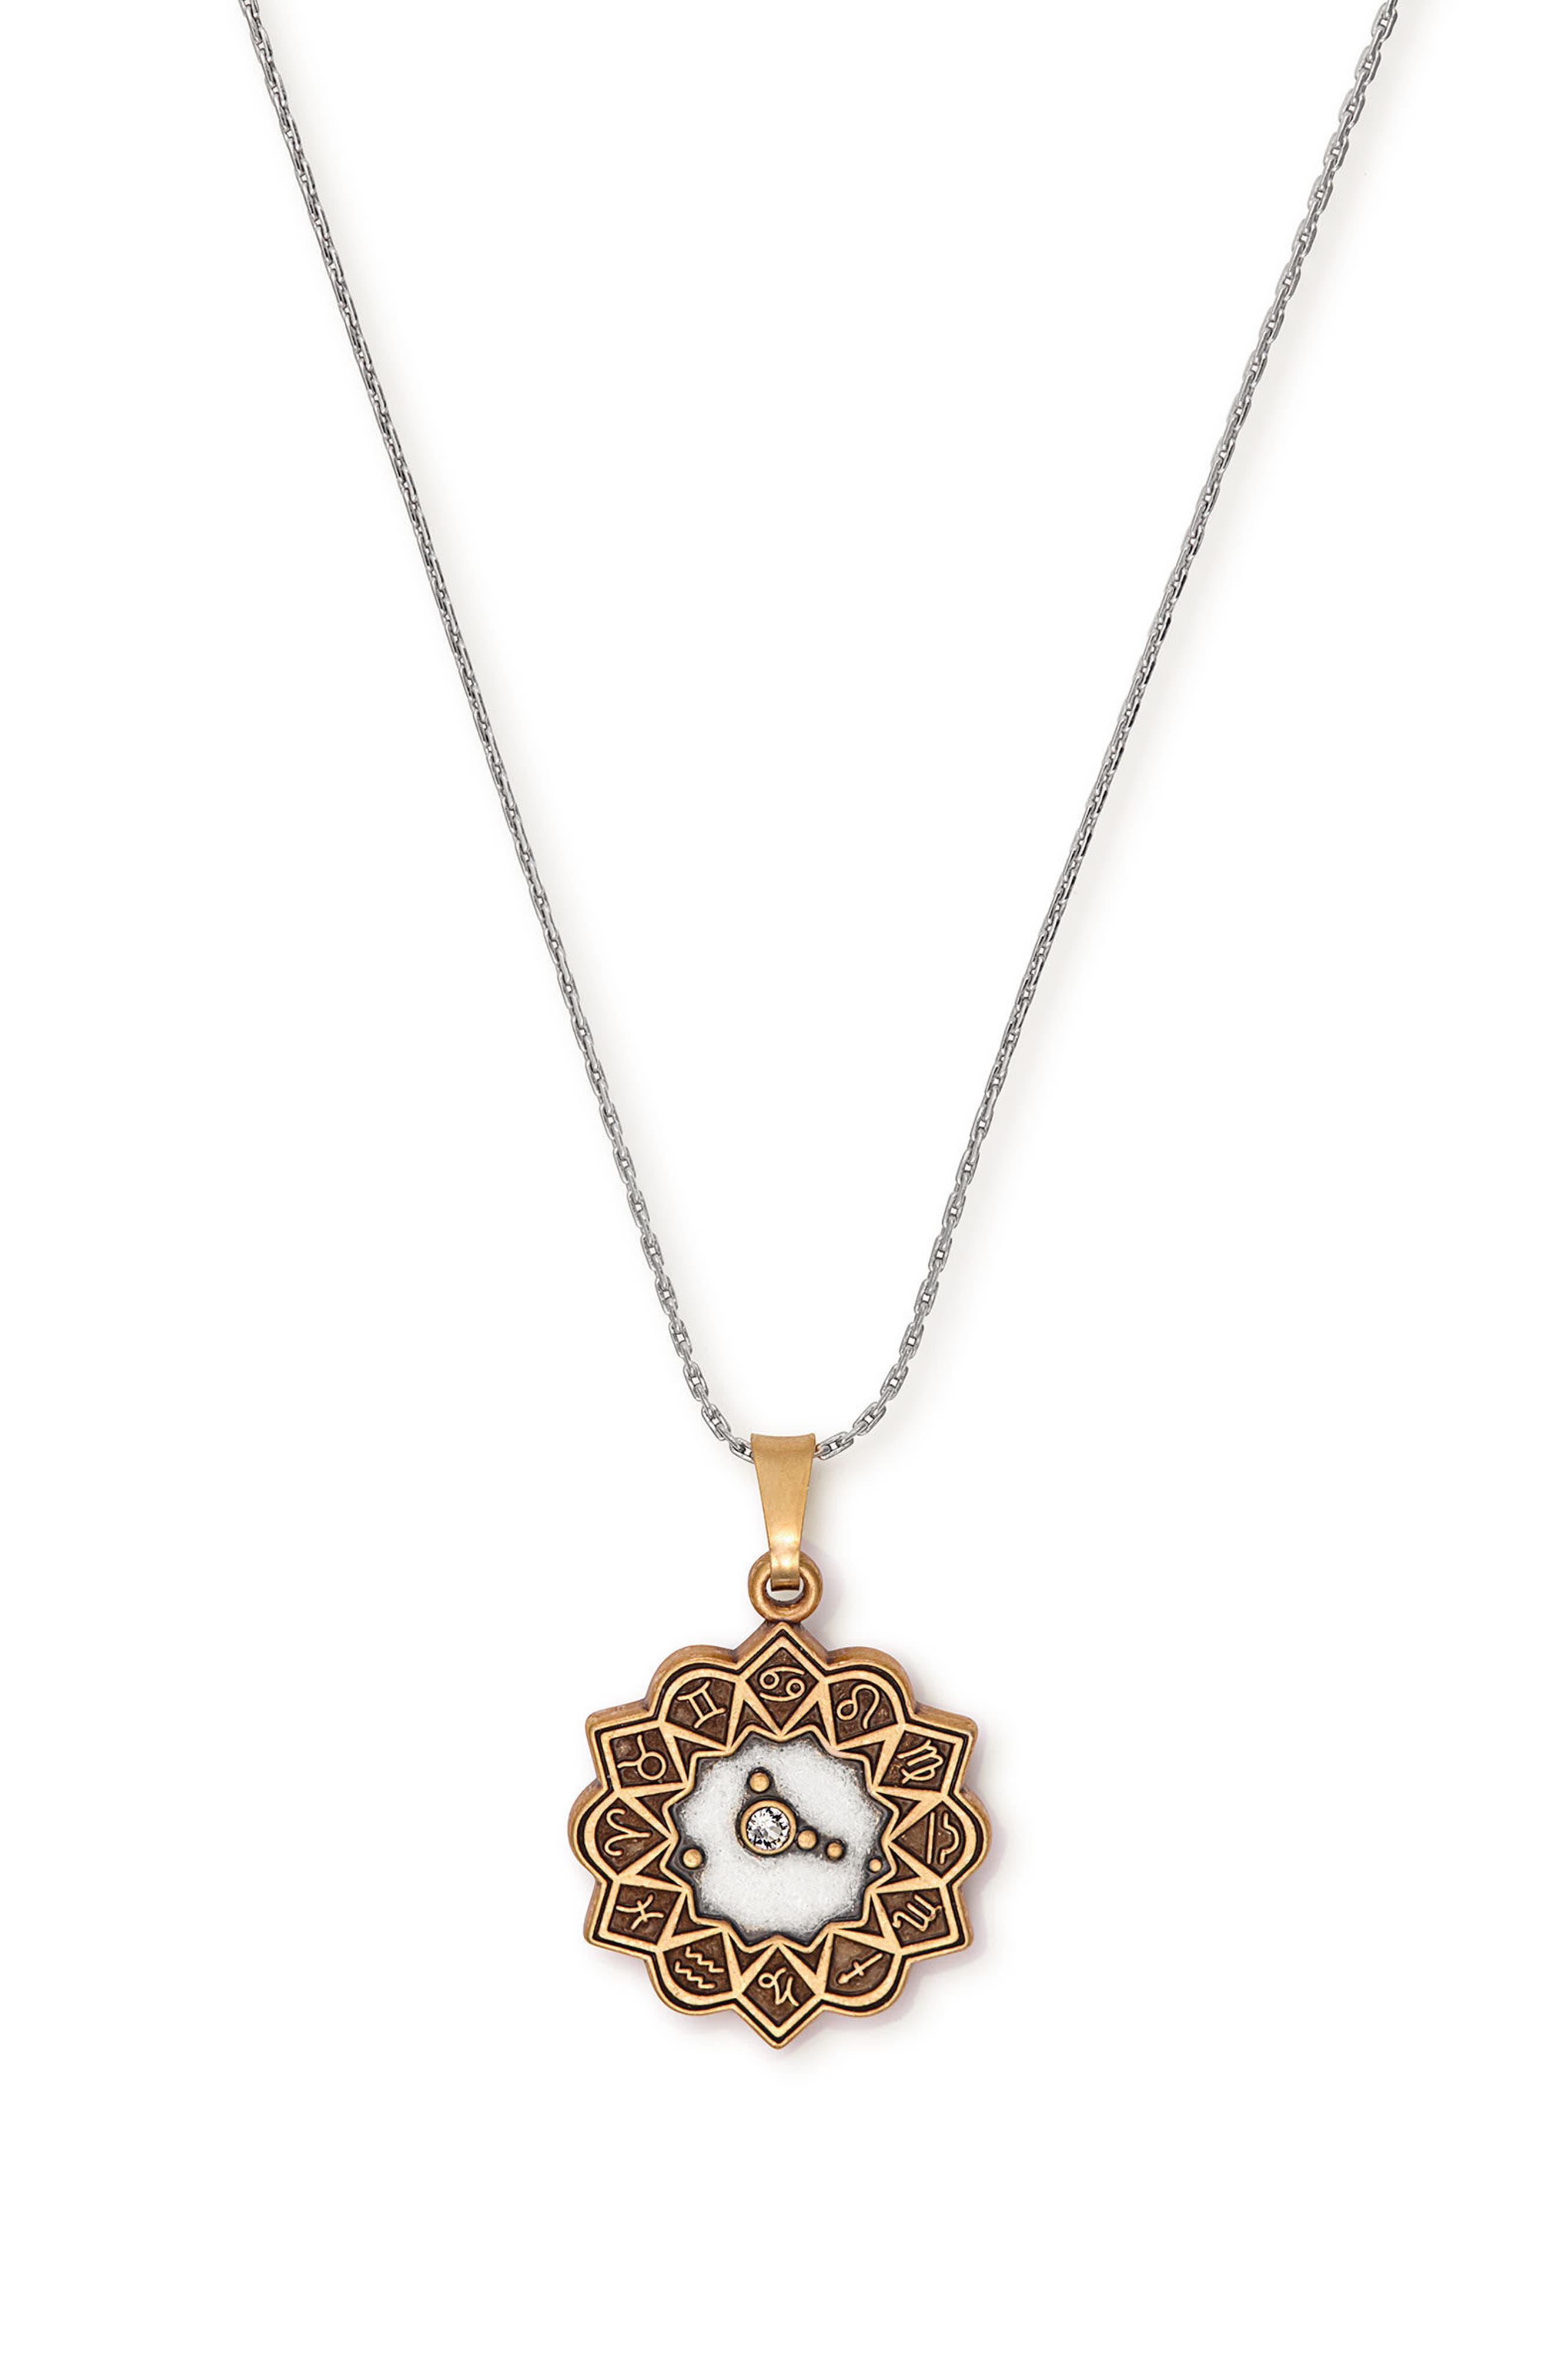 Aries Expandable Pendant Necklace,                             Main thumbnail 1, color,                             Cancer/ Two-Toned